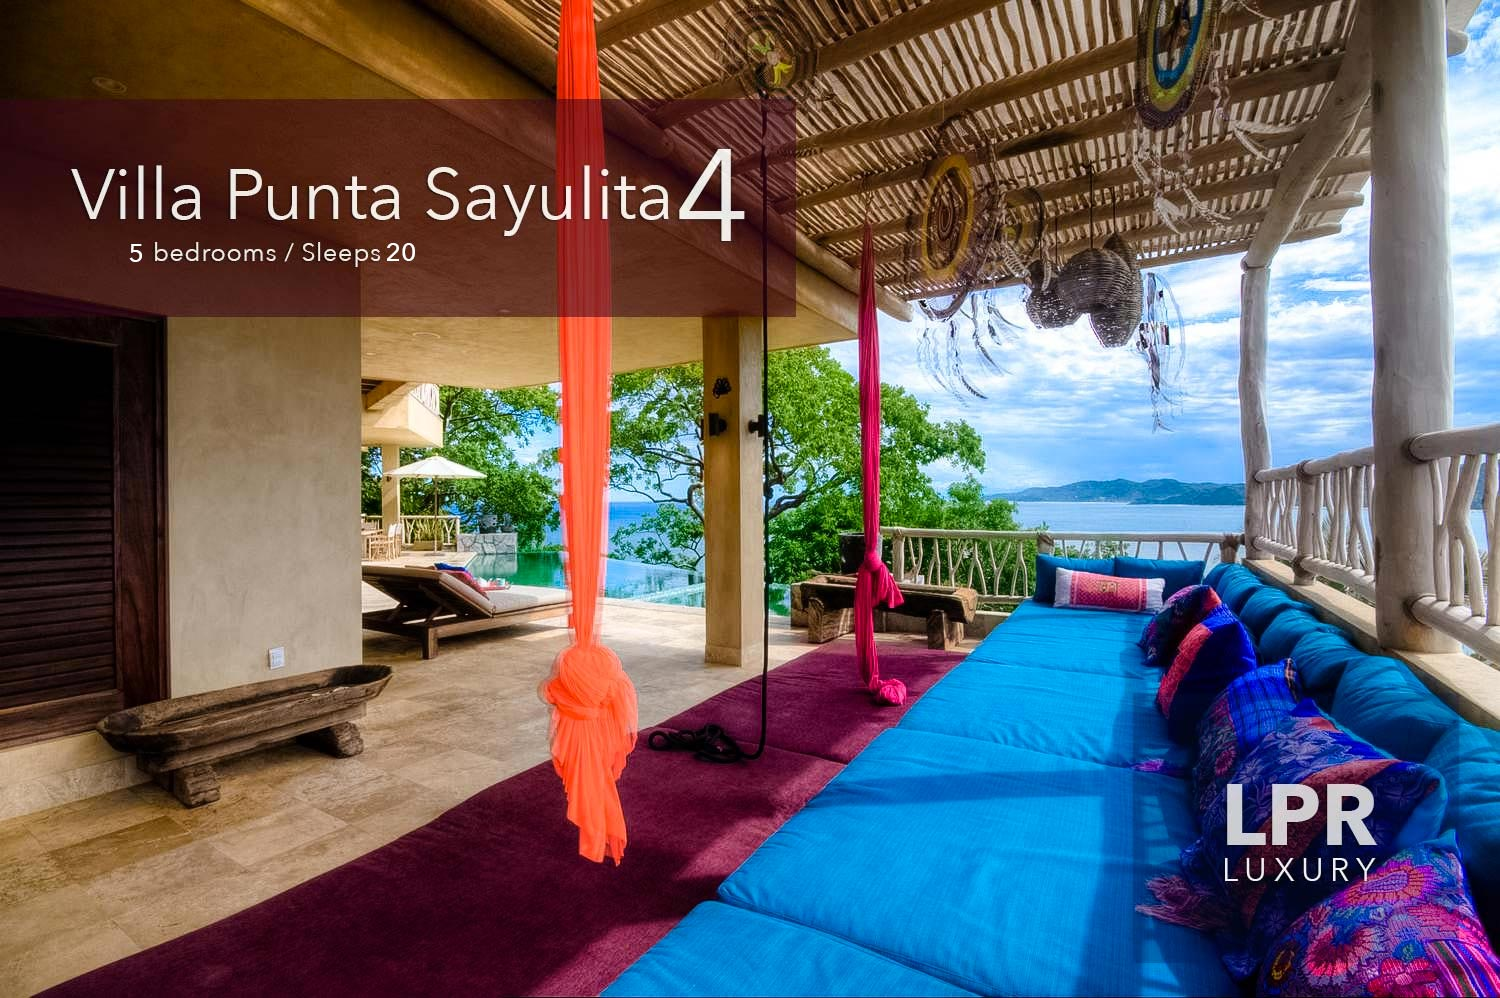 Villa Punta Sayulita 4 - Luxury vacation rental villa overlooking Sayulita, Riviera Nayarit, Mexico